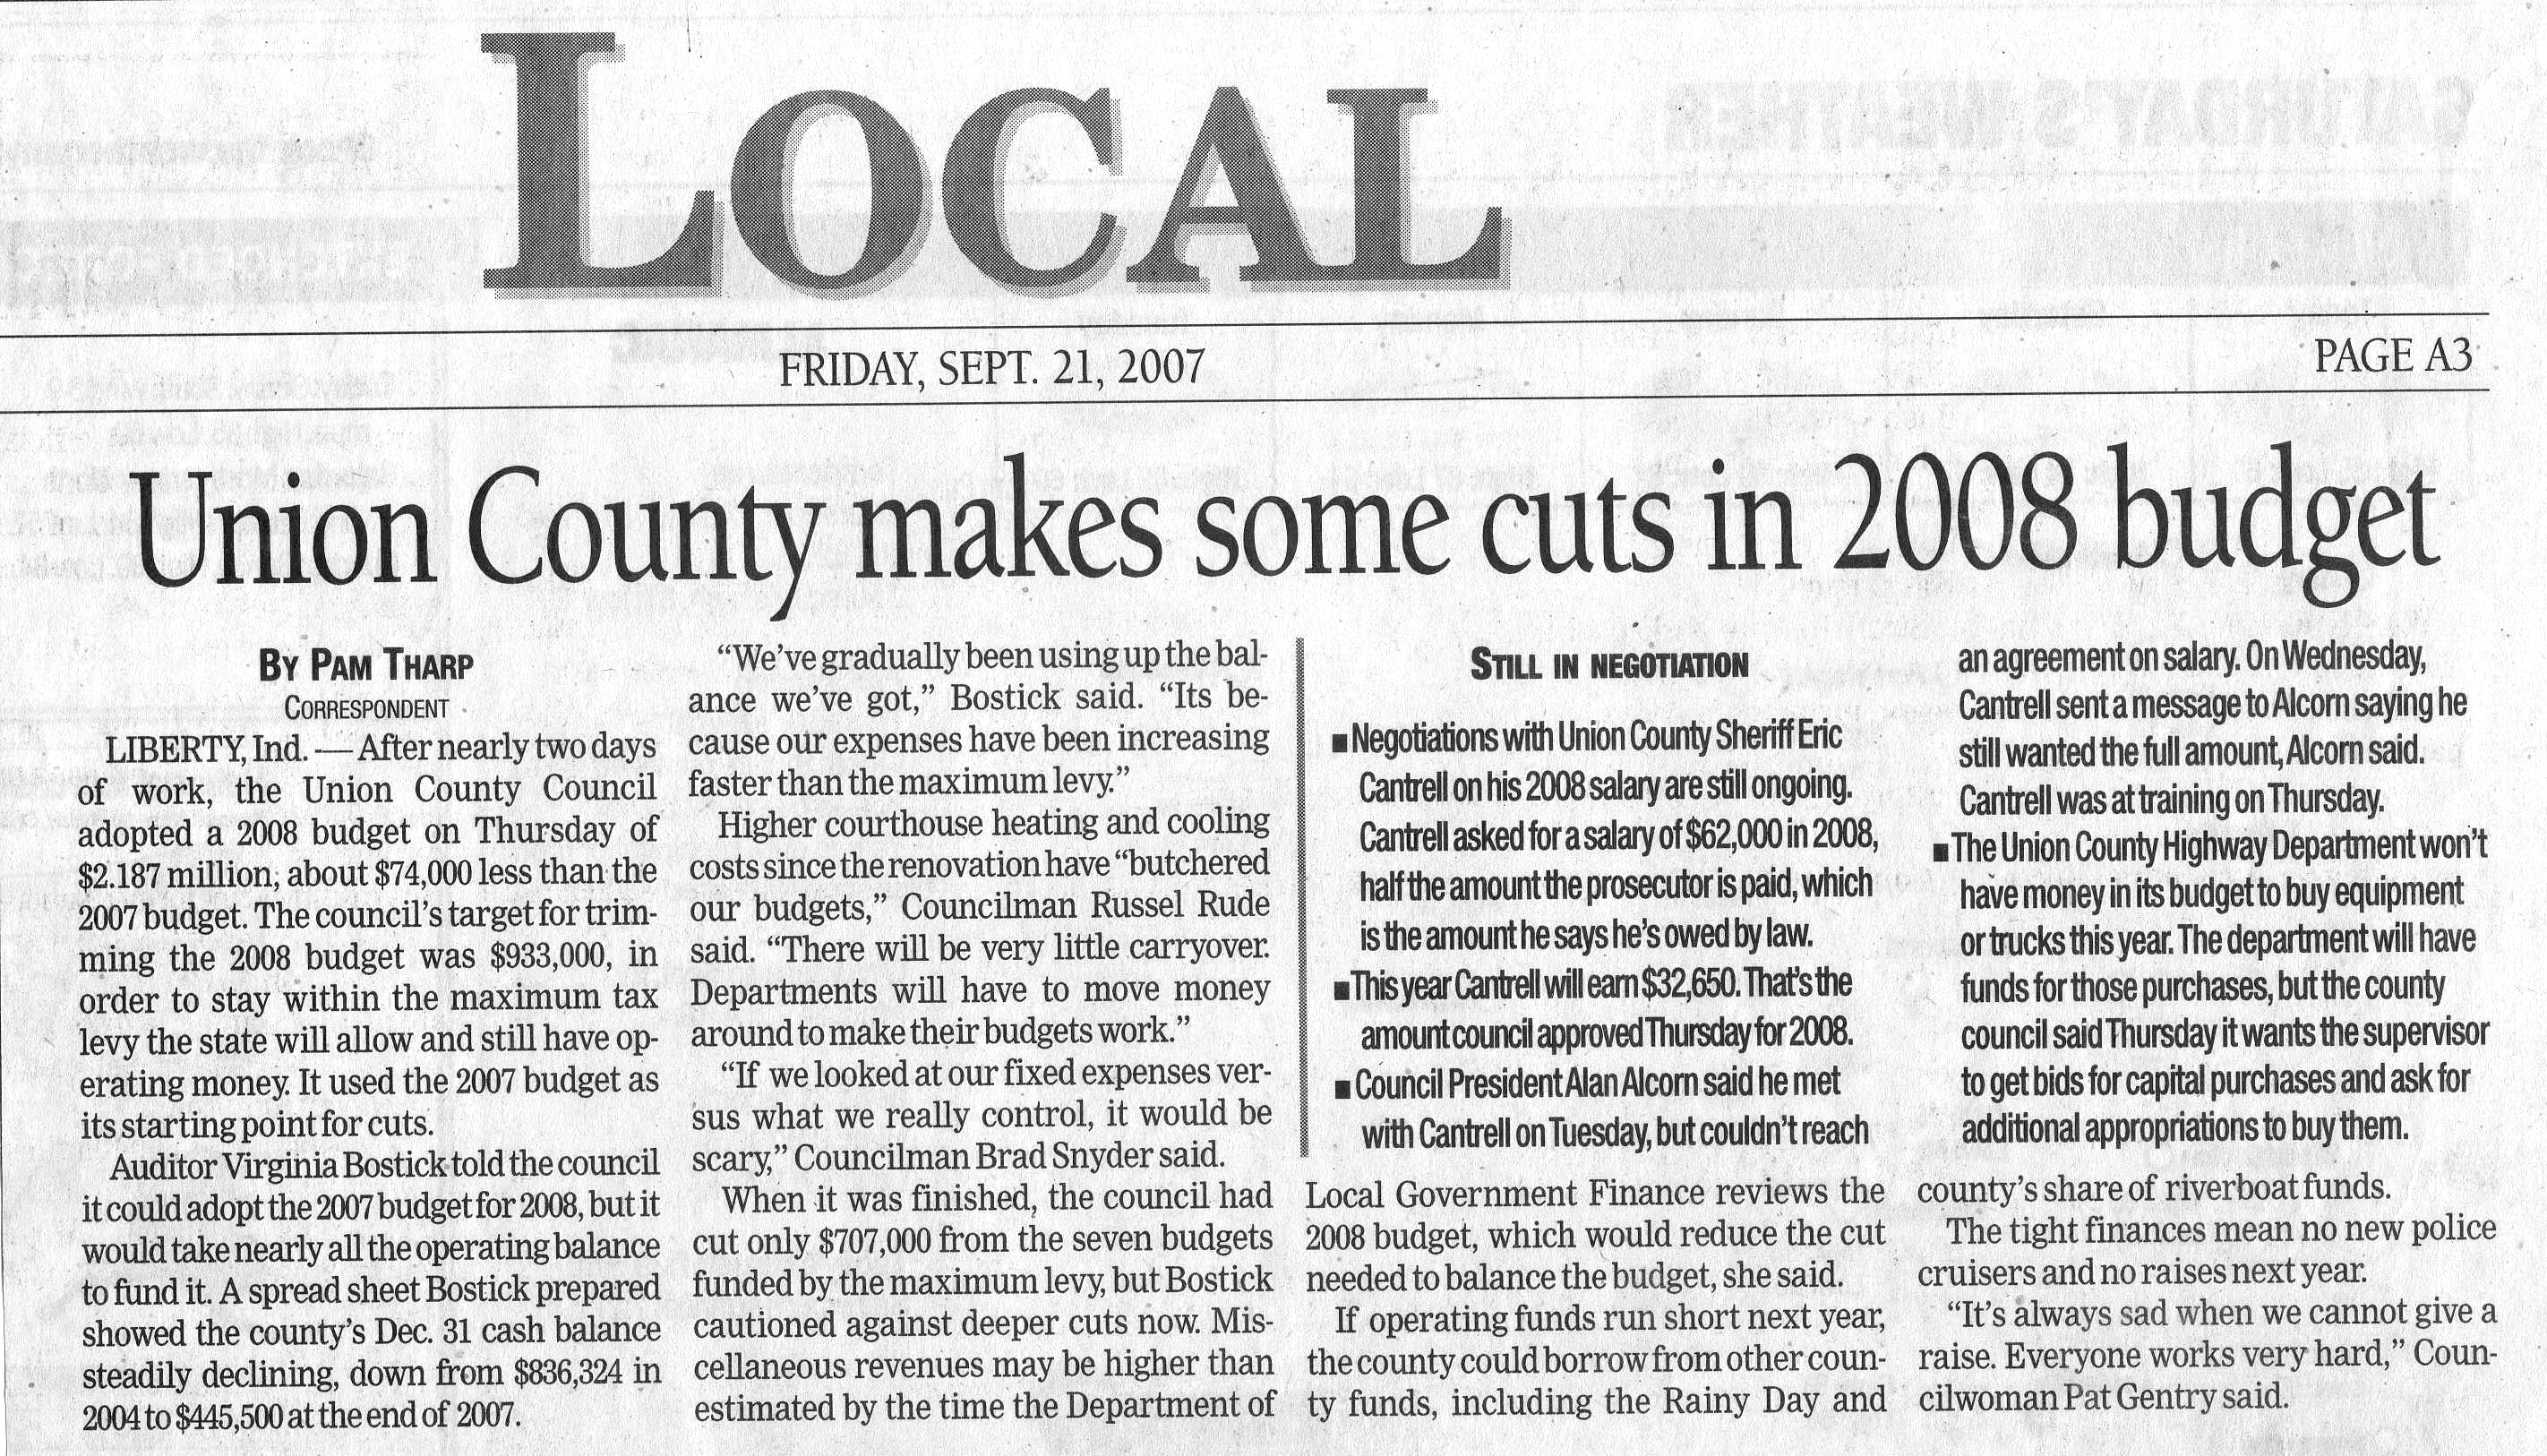 Union County Makes Some Cuts In 2008 Budget - Palladium Item September 21, 2007